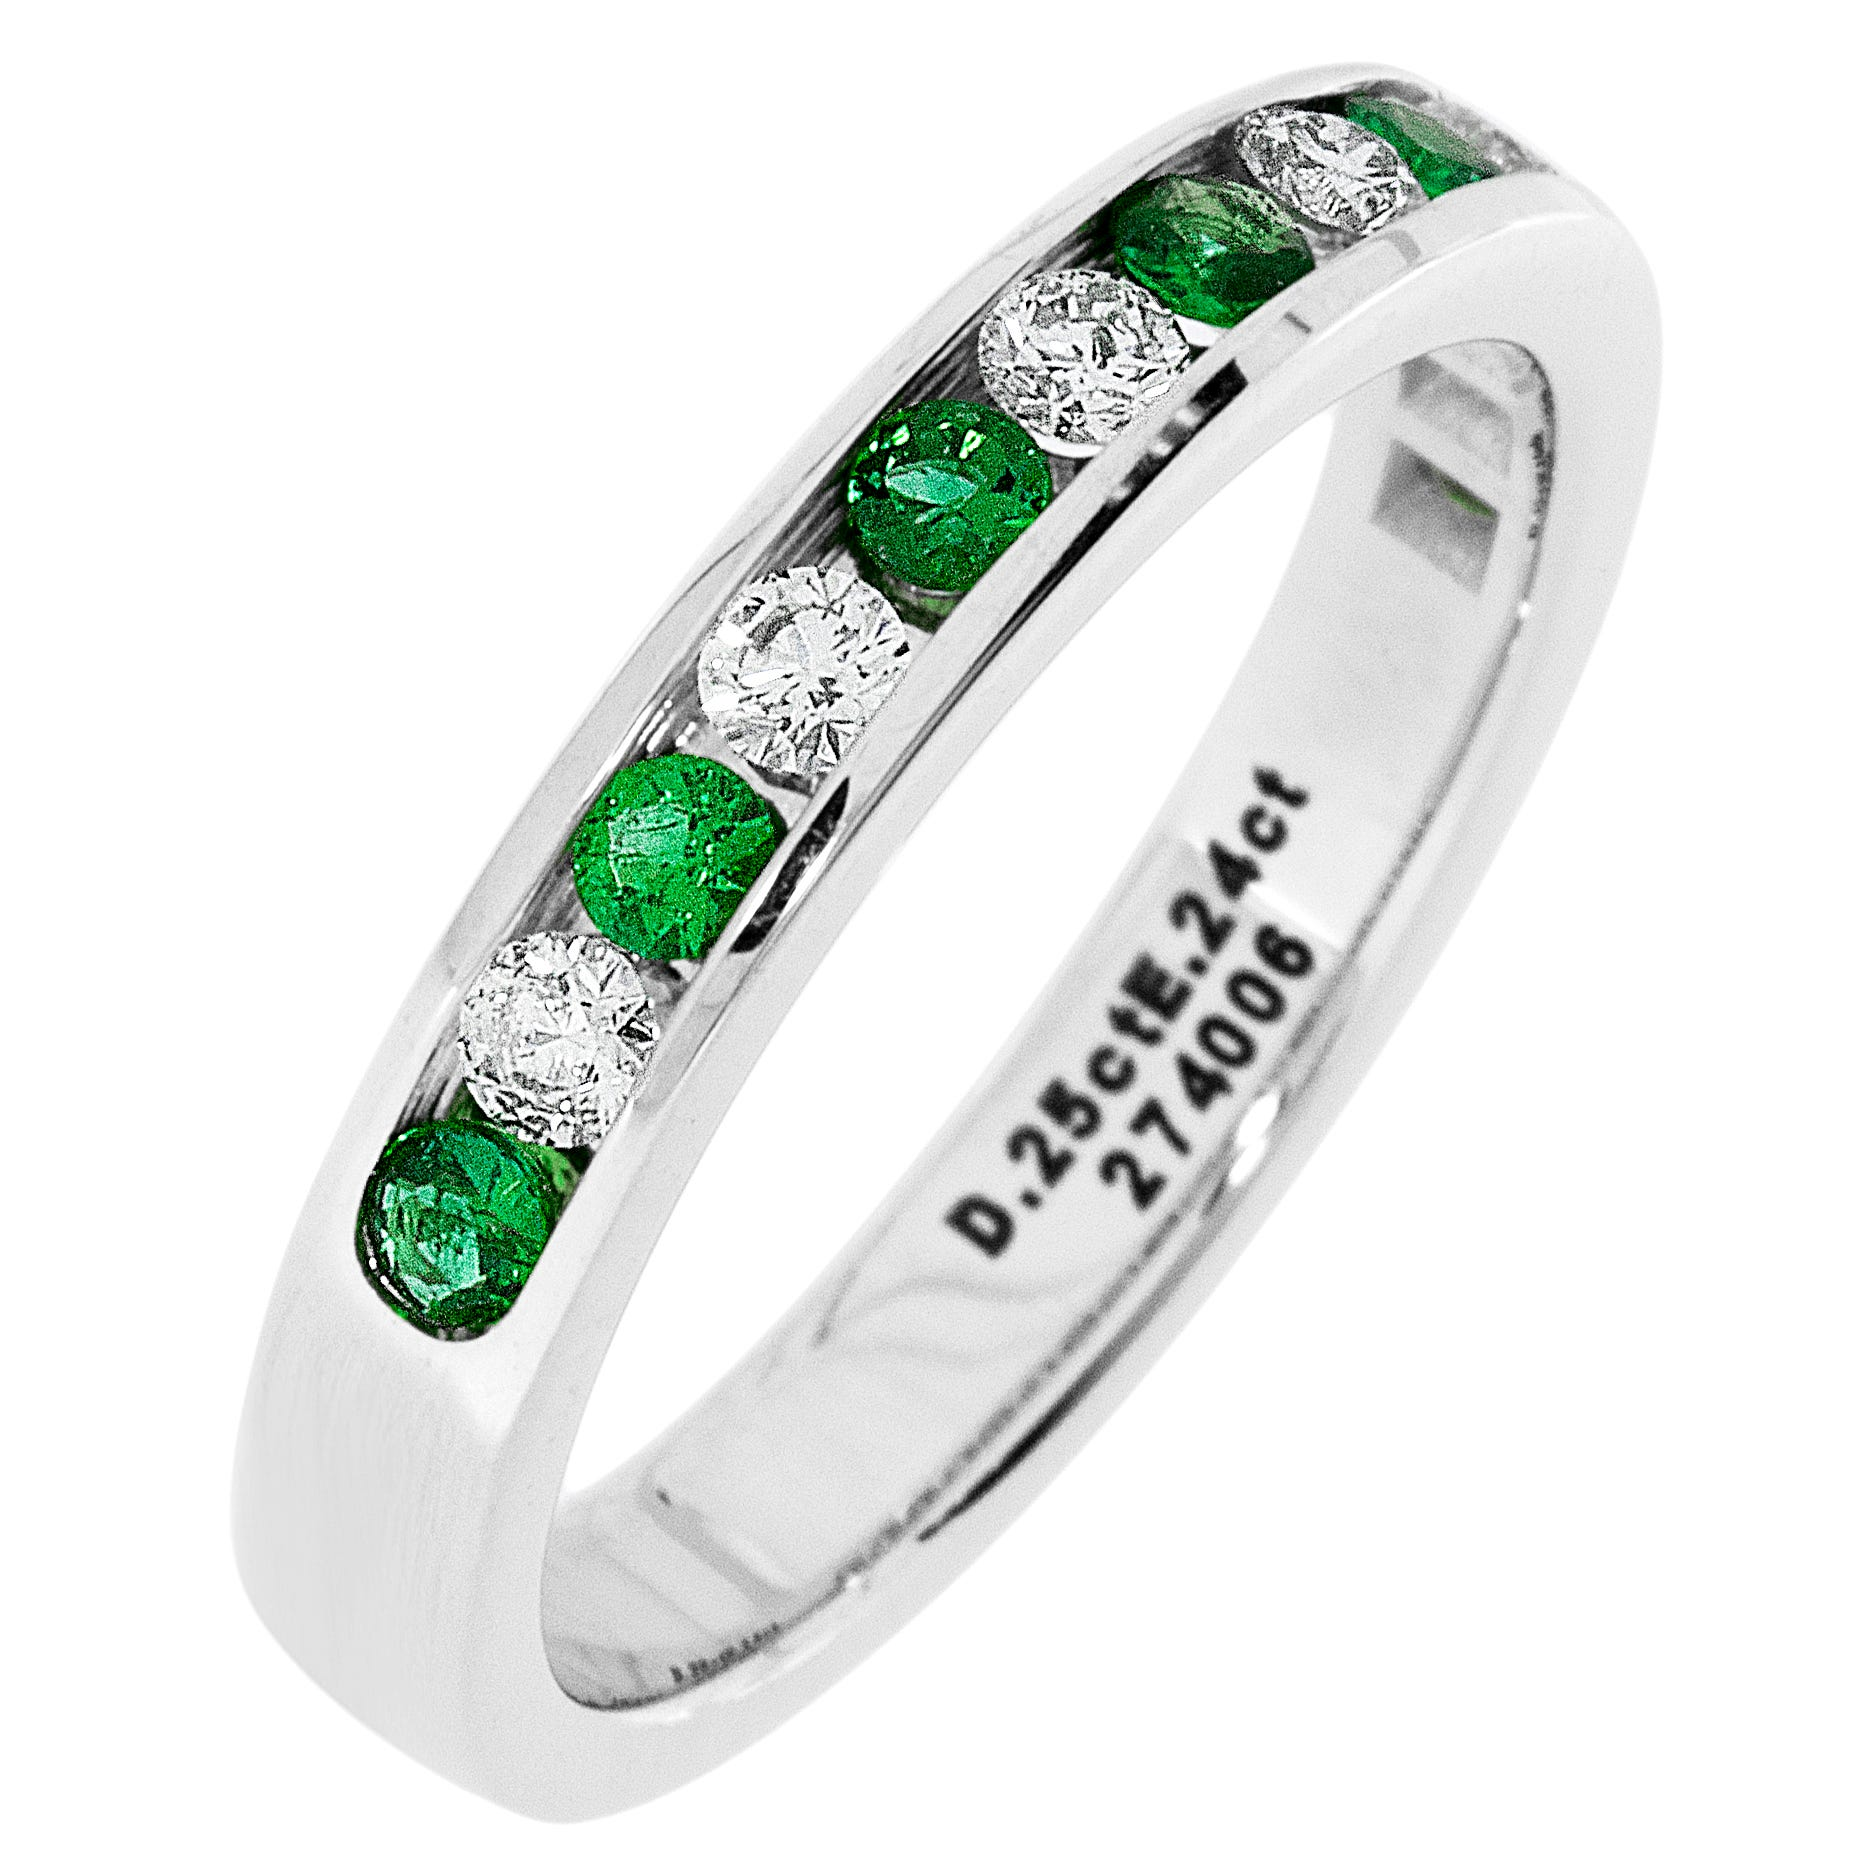 Diamond & Emerald Channel Set 1/4ctw. Band in 14k White Gold